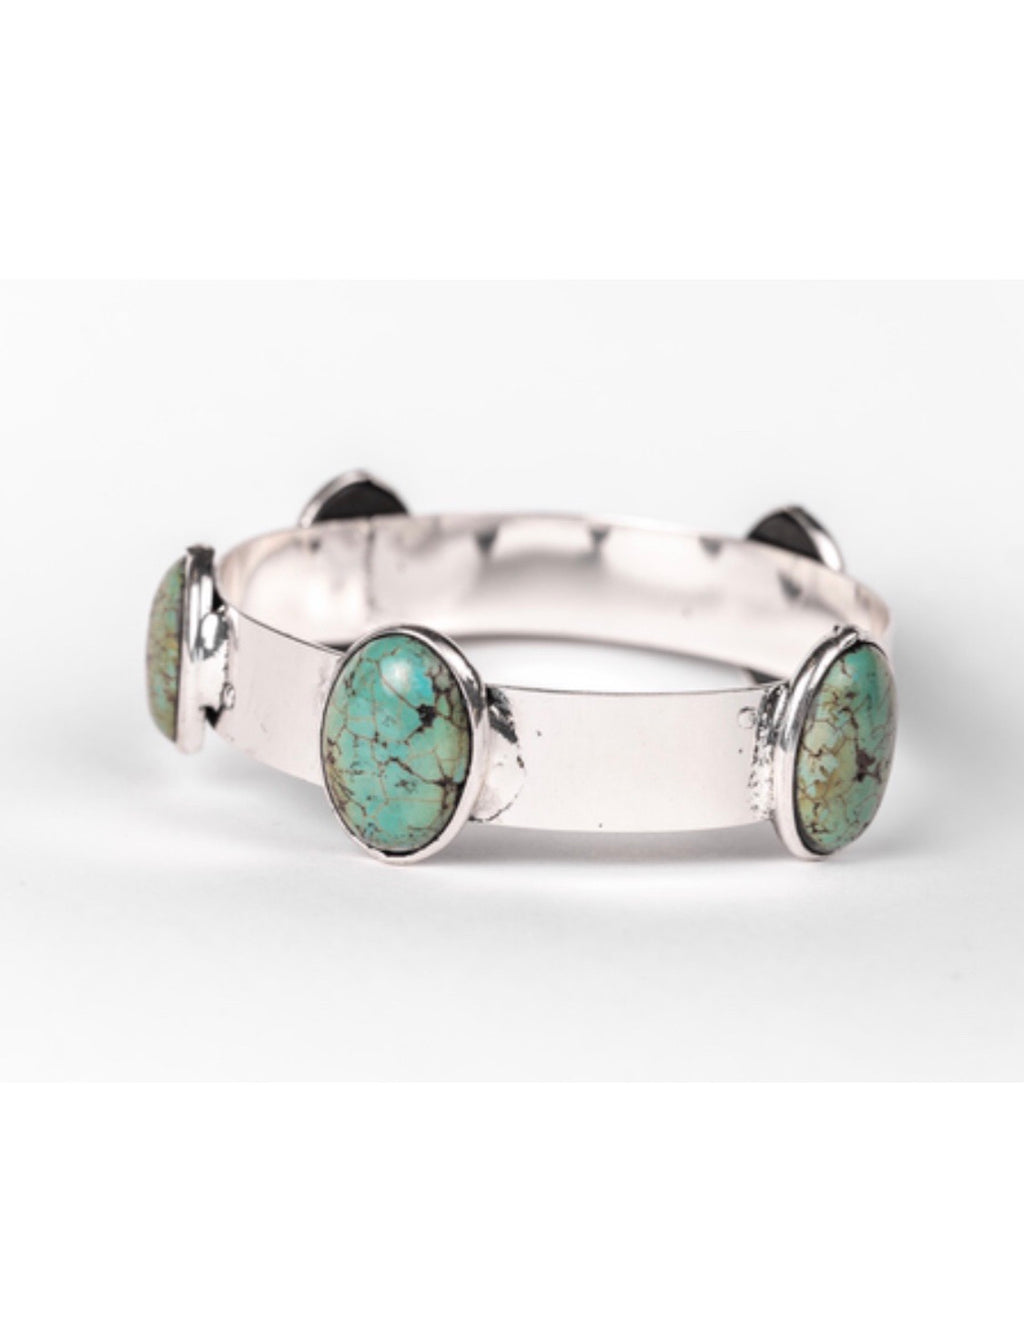 The Santa Palo Silver & Turquoise Bangle Bracelet